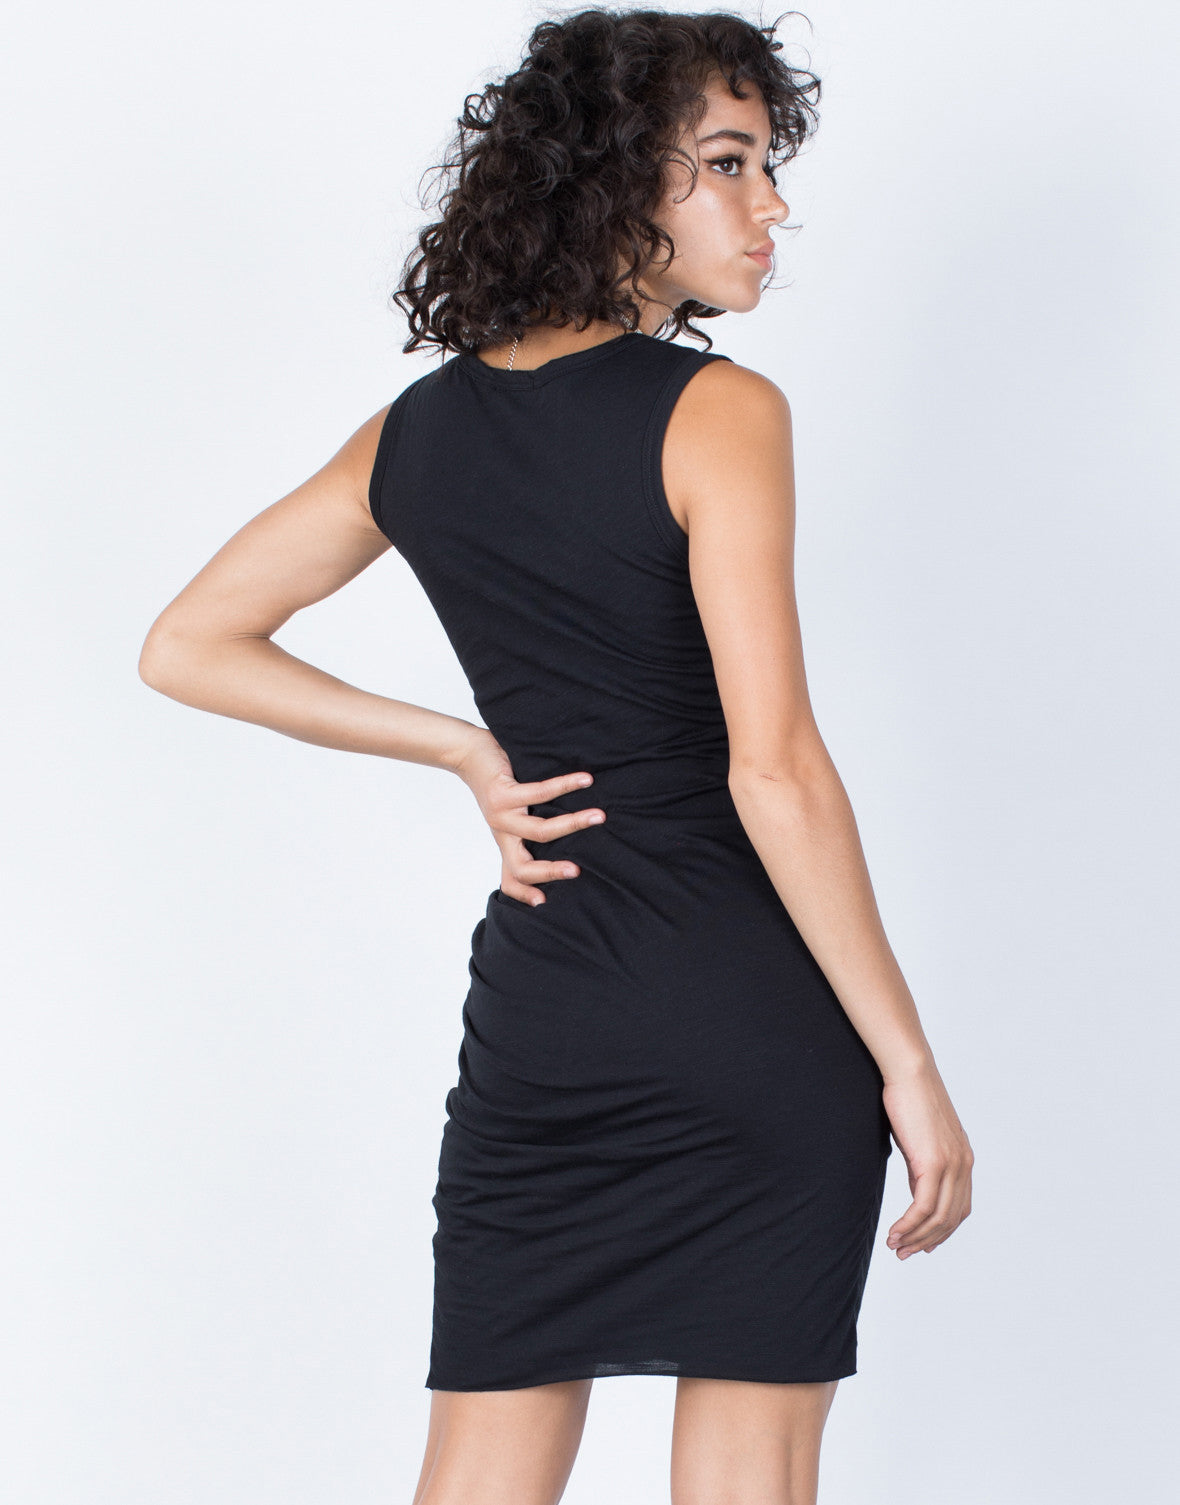 Black Samantha Ruched Dress - Back View